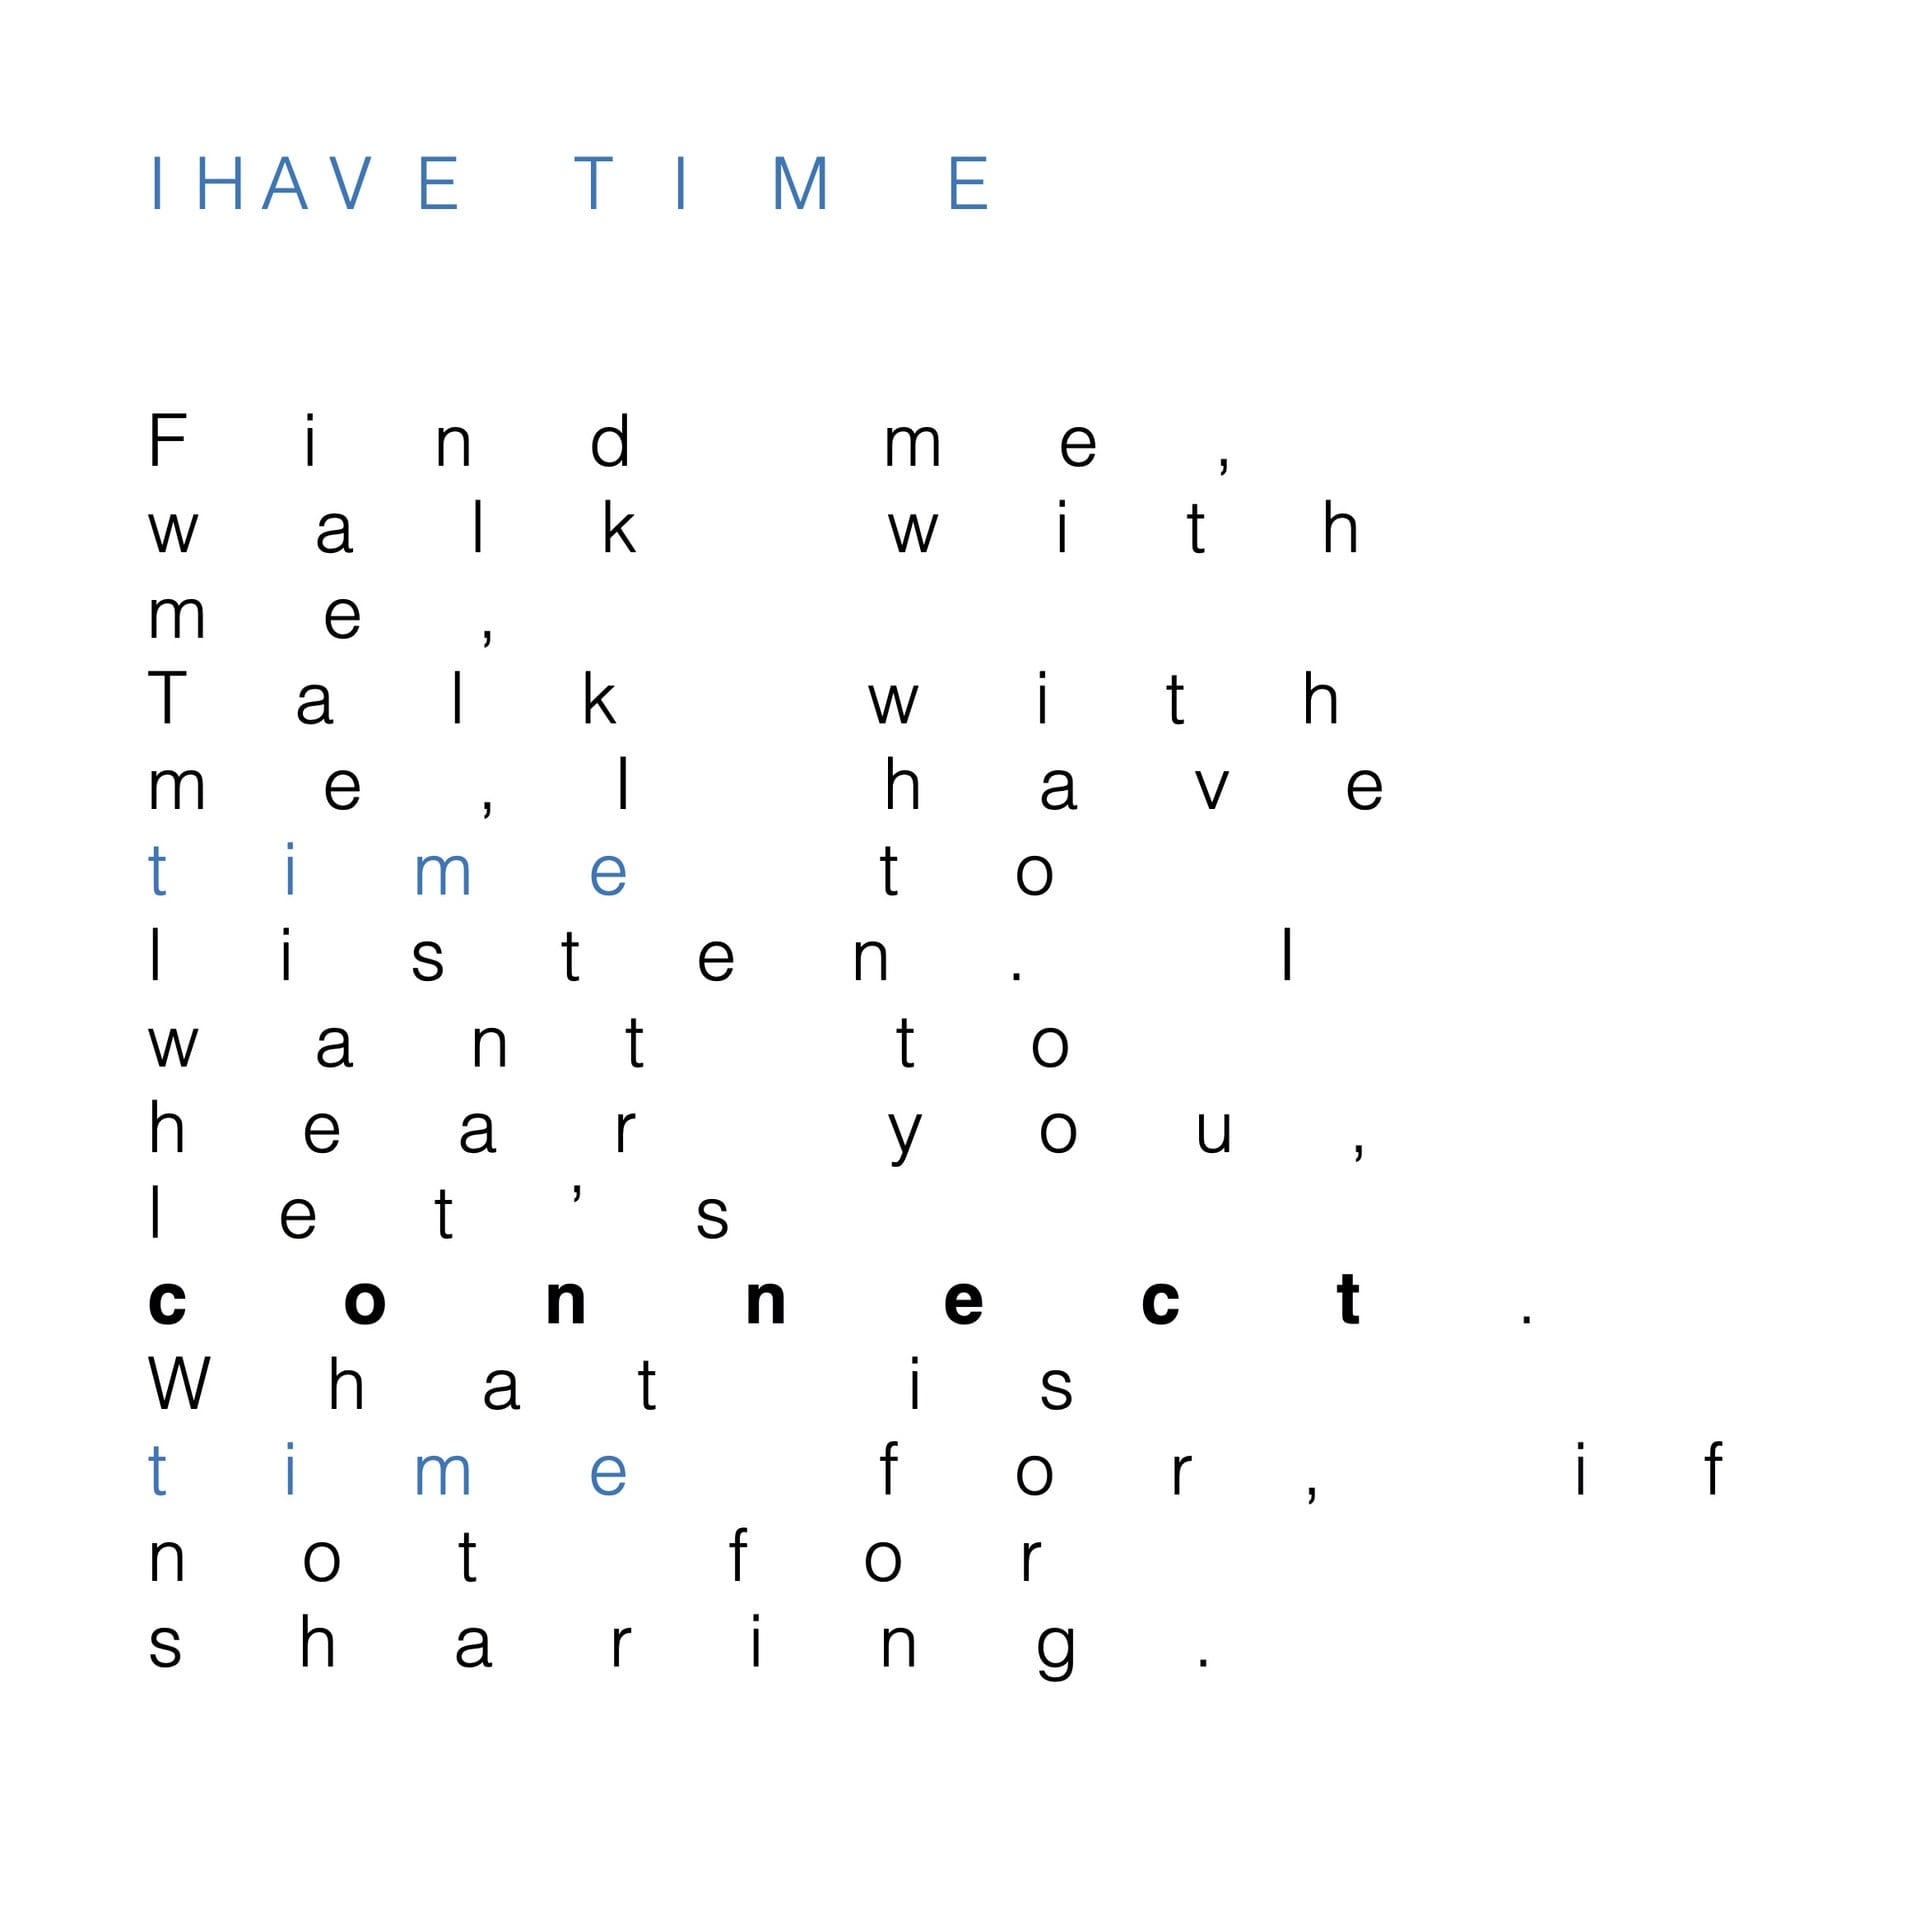 I have time